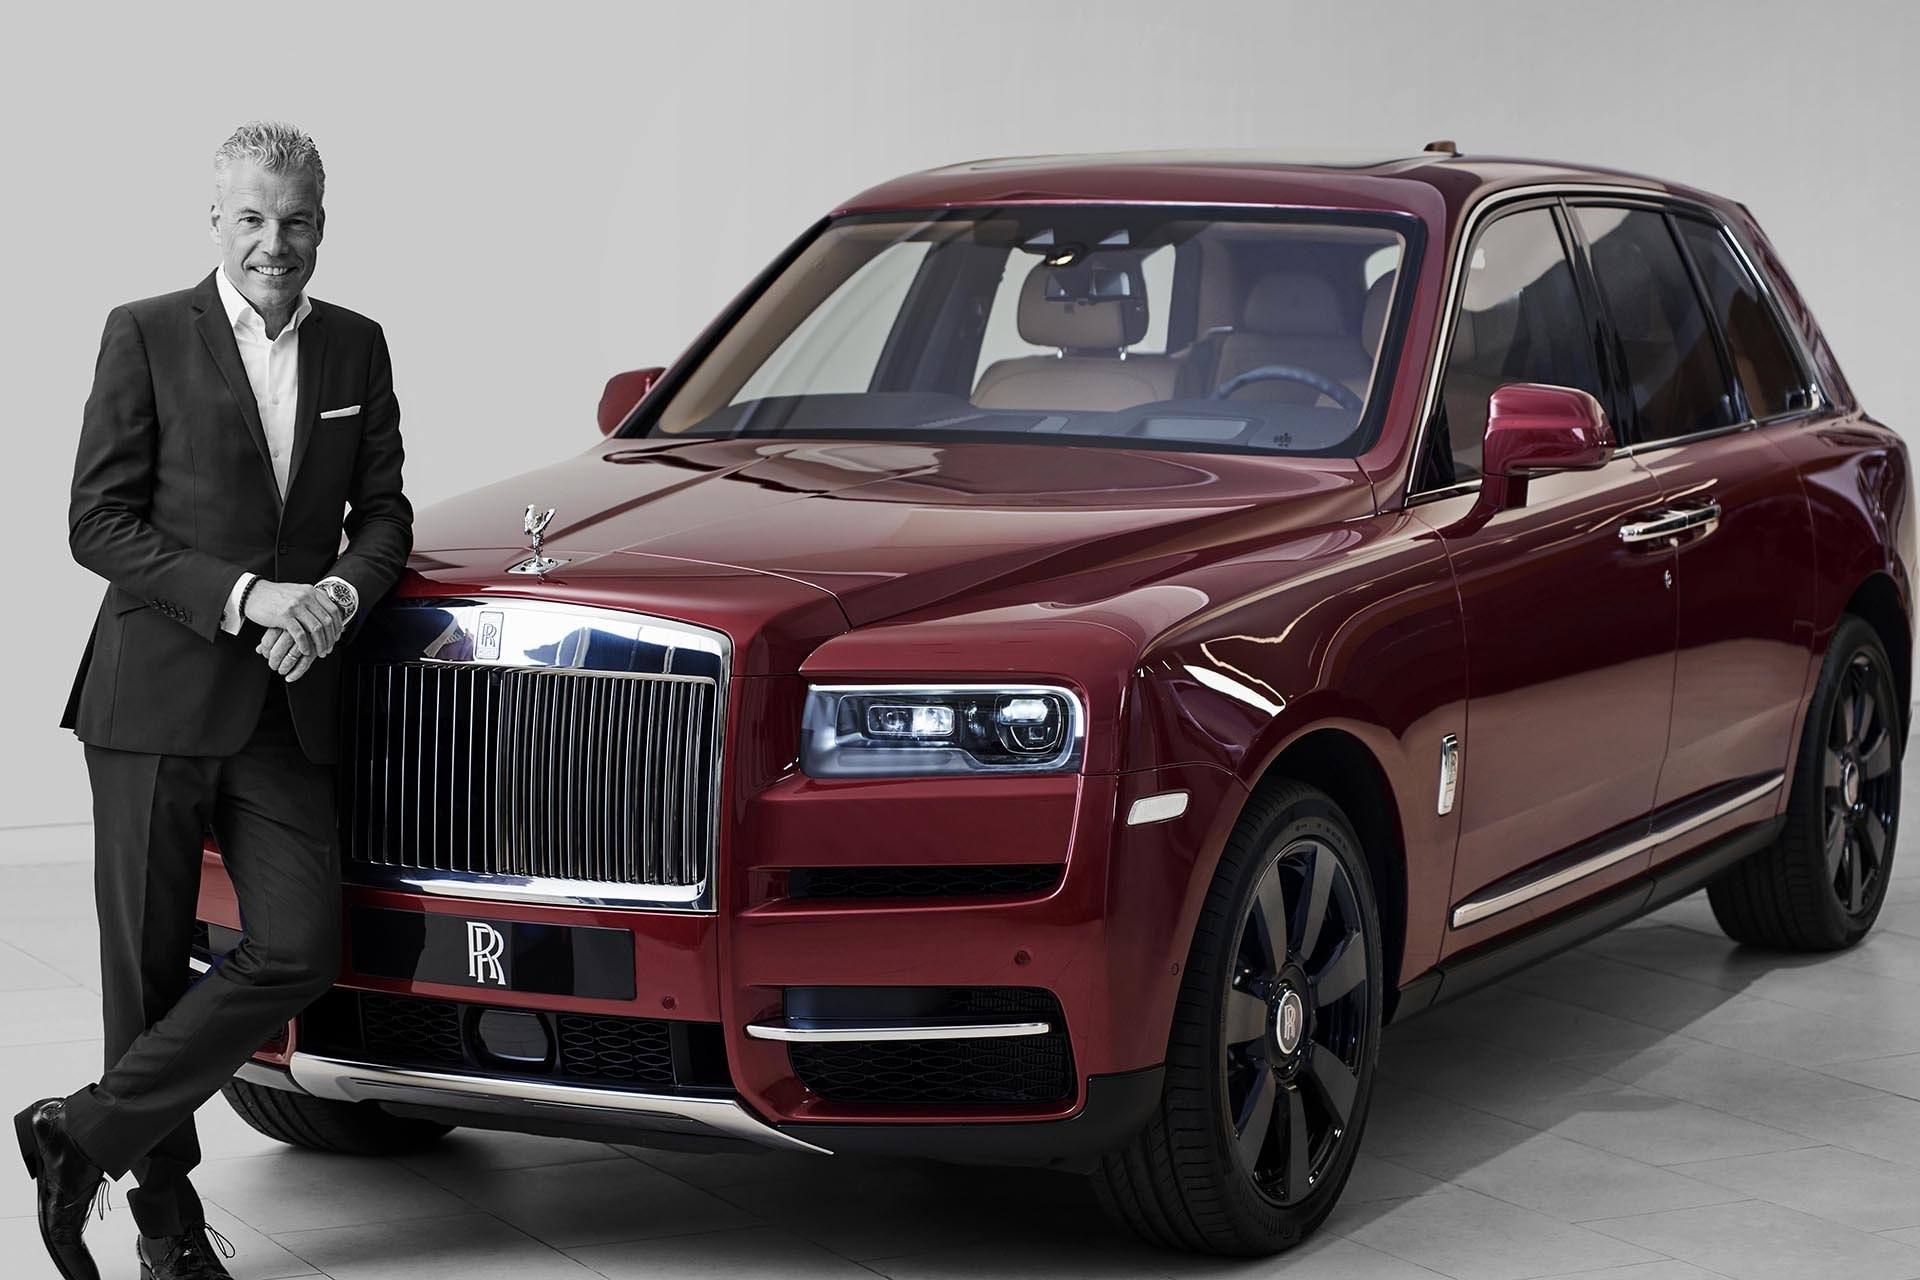 Rolls-Royce CEO Torsten Müller-Ötvös Says It's Easy To Get Super Rich, These Days